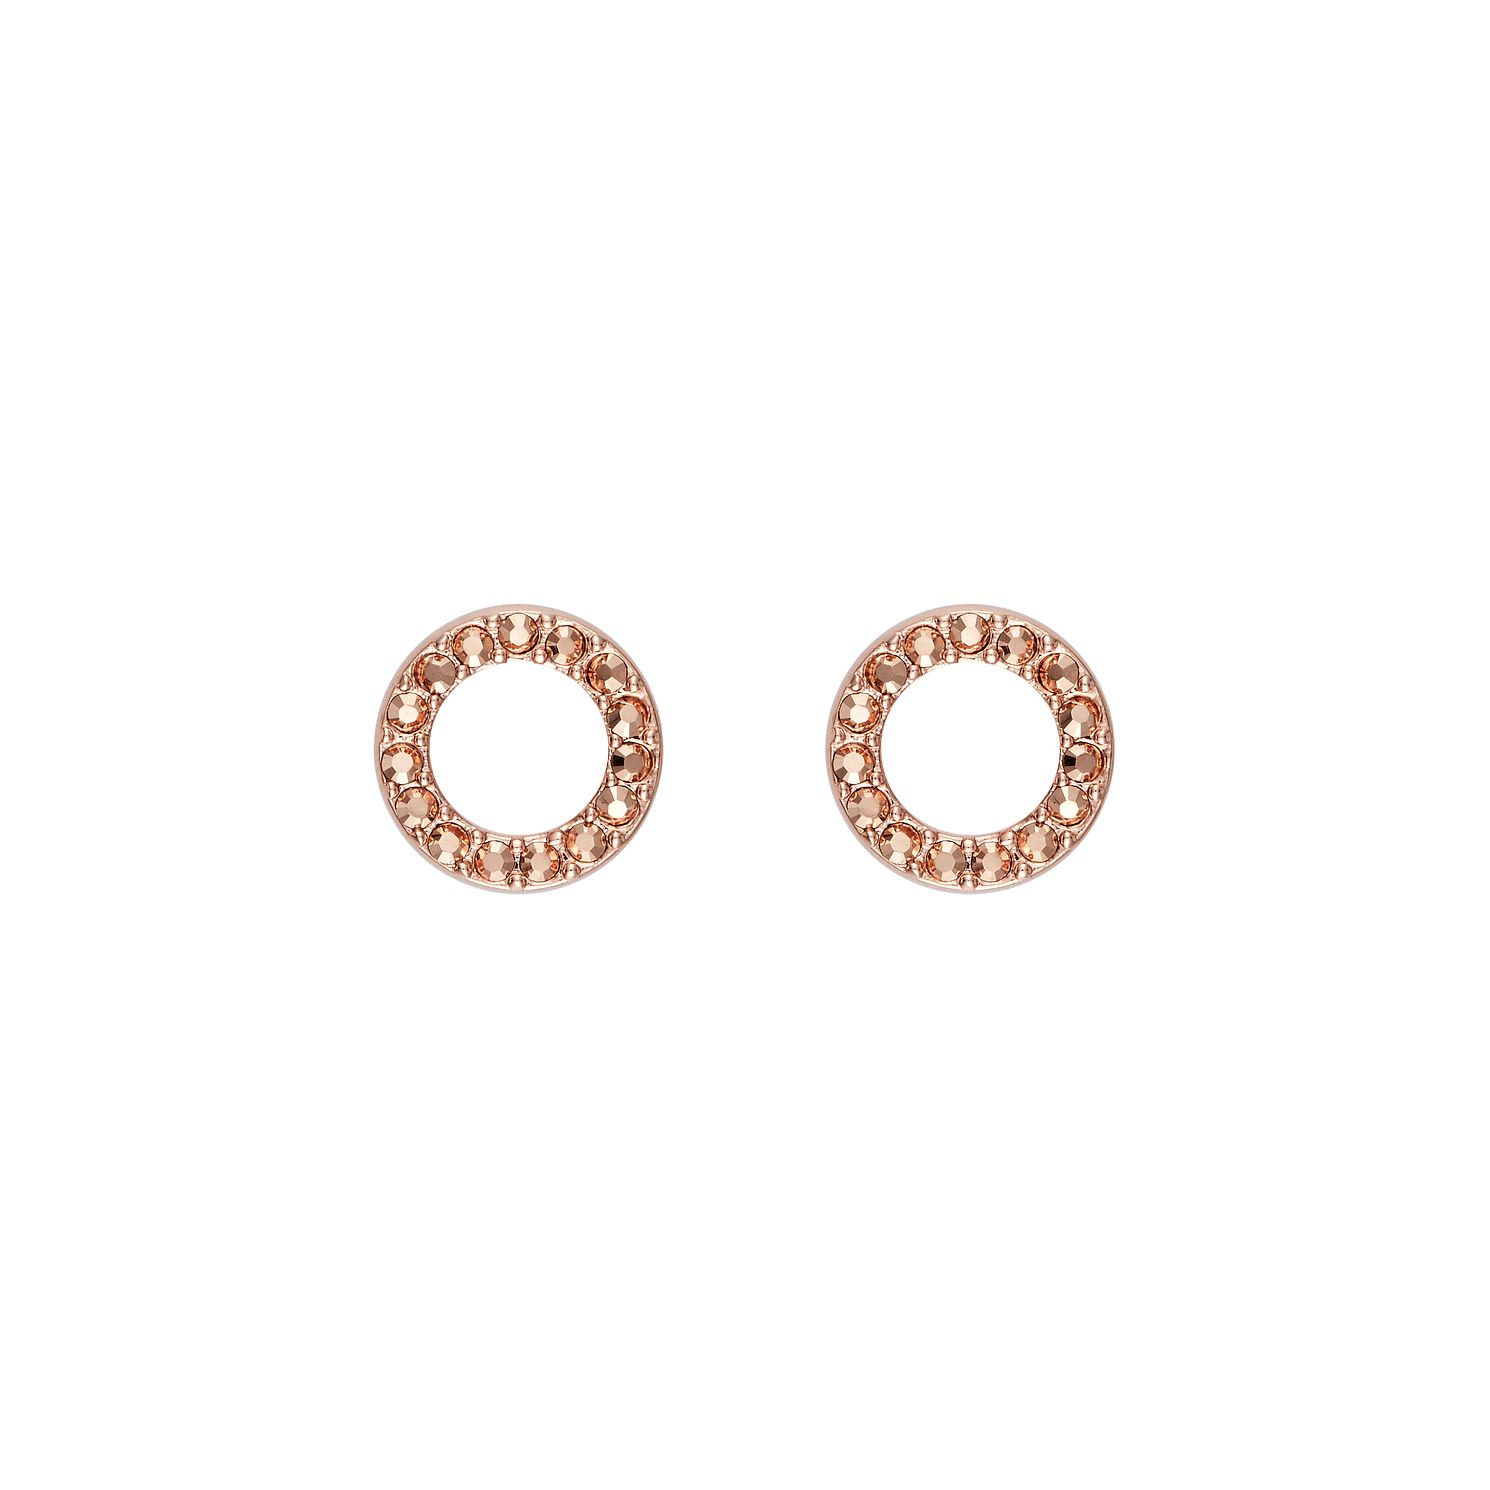 DKNY Thick Pave Circle Rose Gold Plated Stud Earrings - Product number 5888433